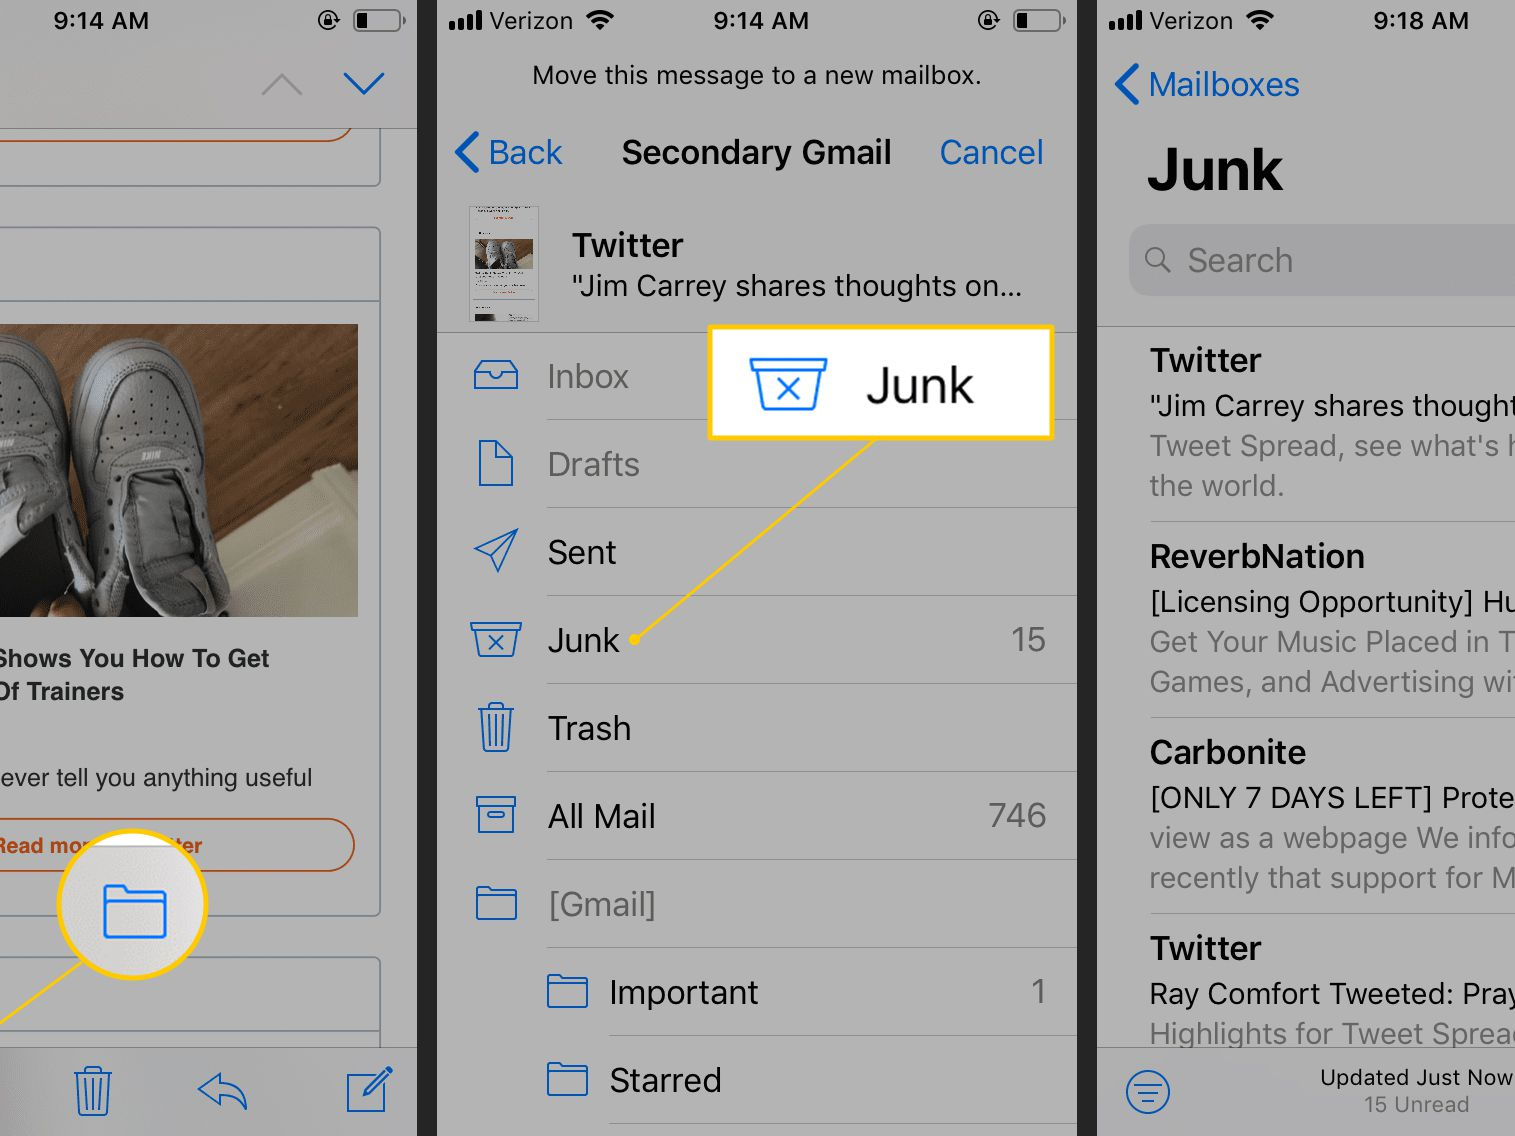 How to Mark Mail as Spam in iOS Mail